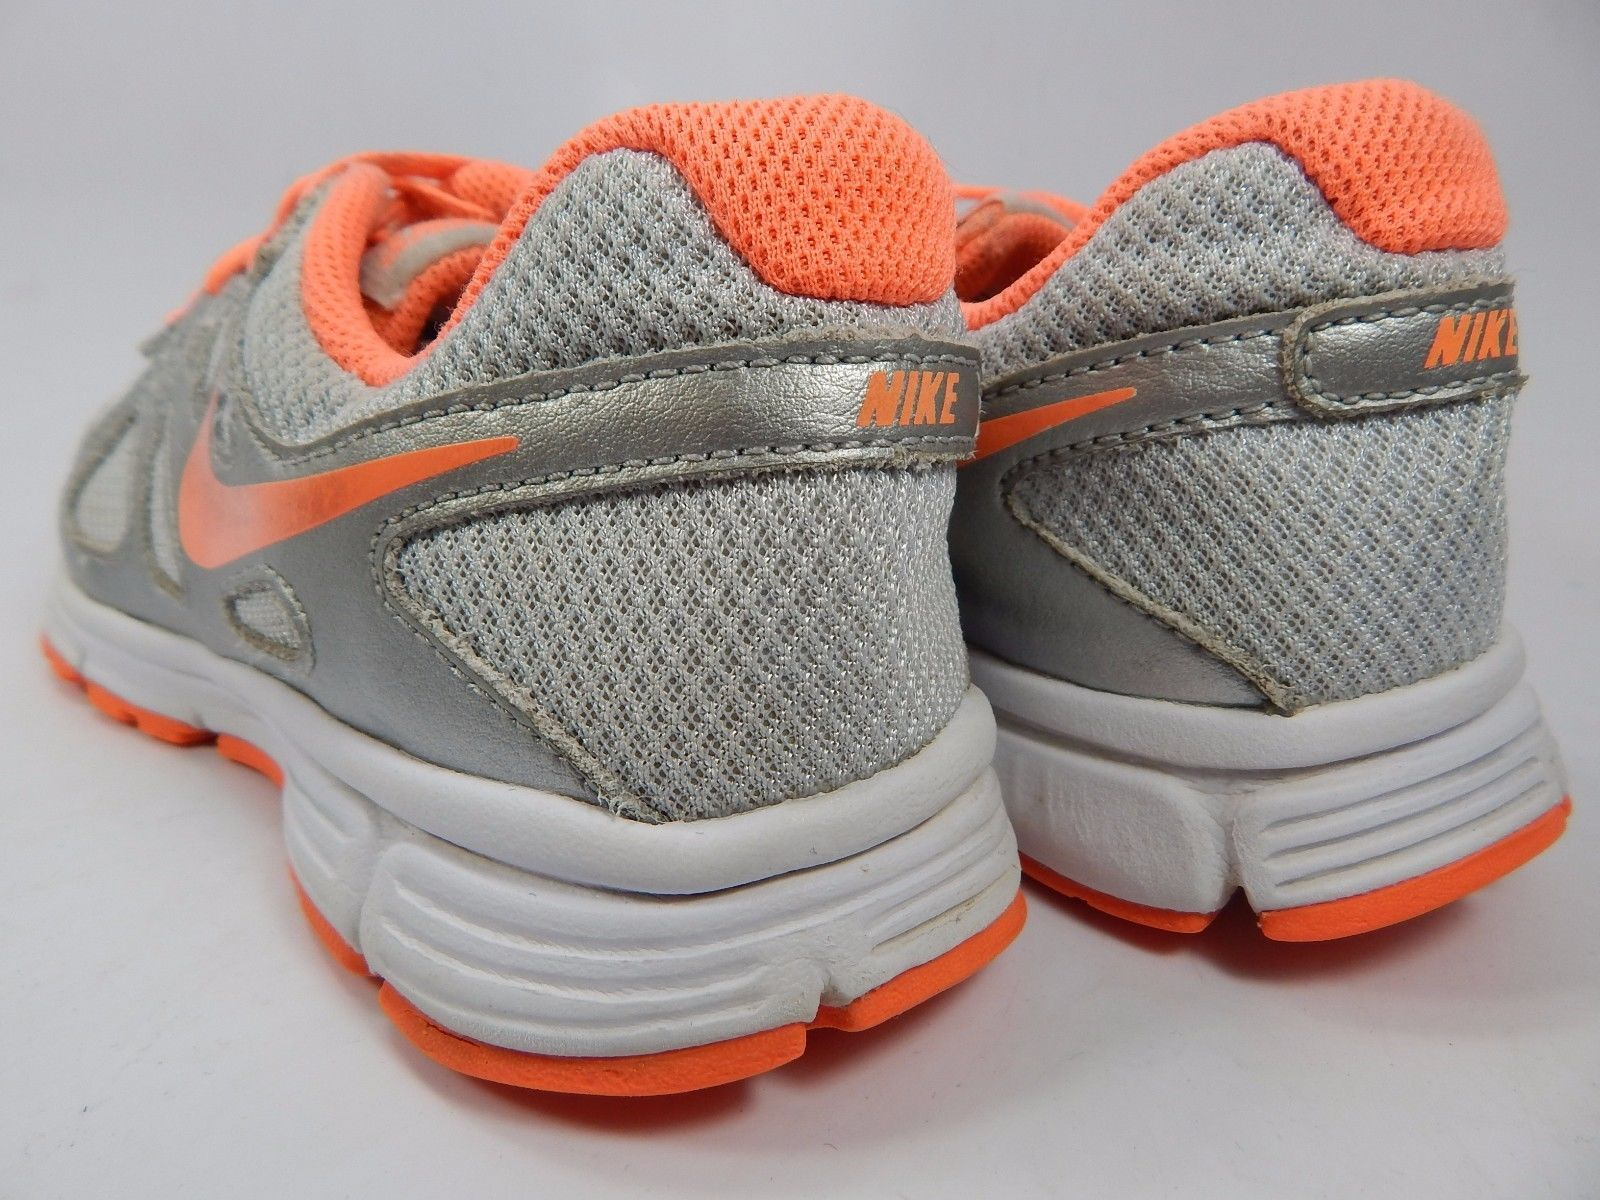 ... nike revolution 2 women s s running shoes size us 4 5 y eu ...